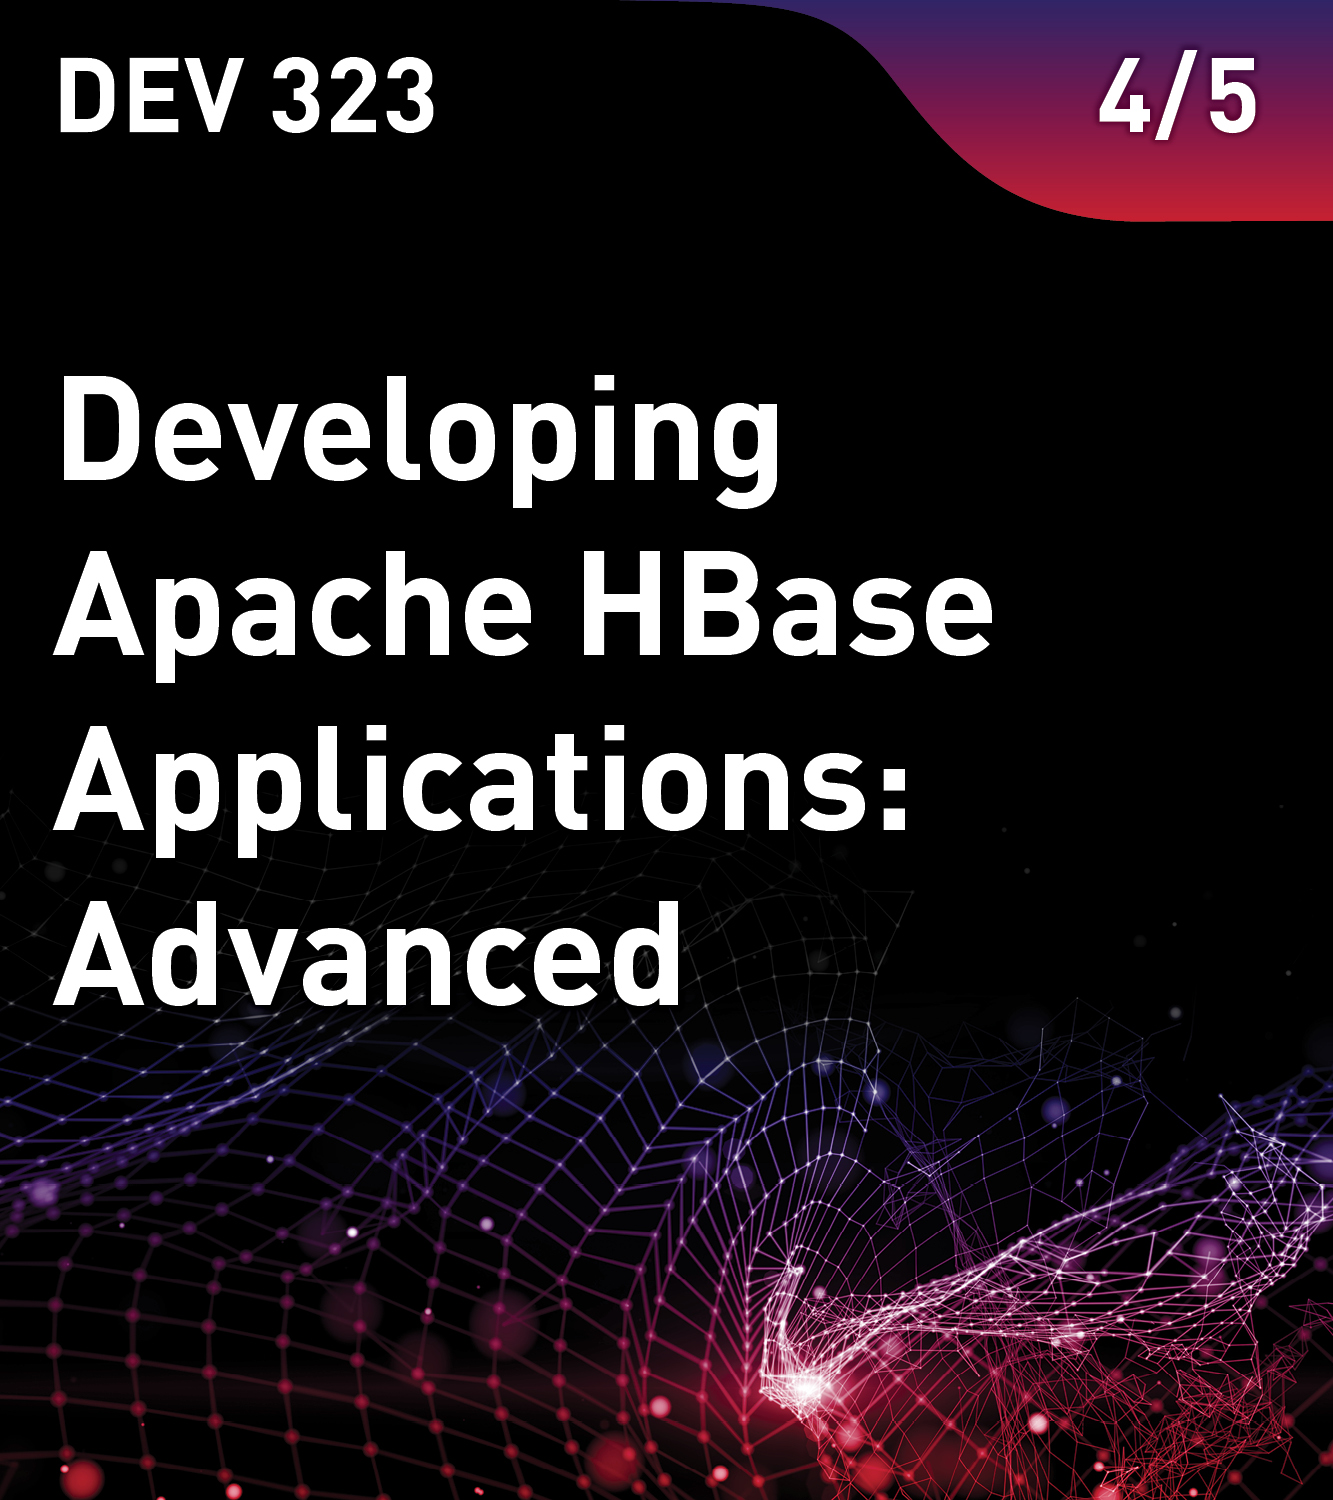 DEV 323 - Developing Apache HBase Applications: Advanced